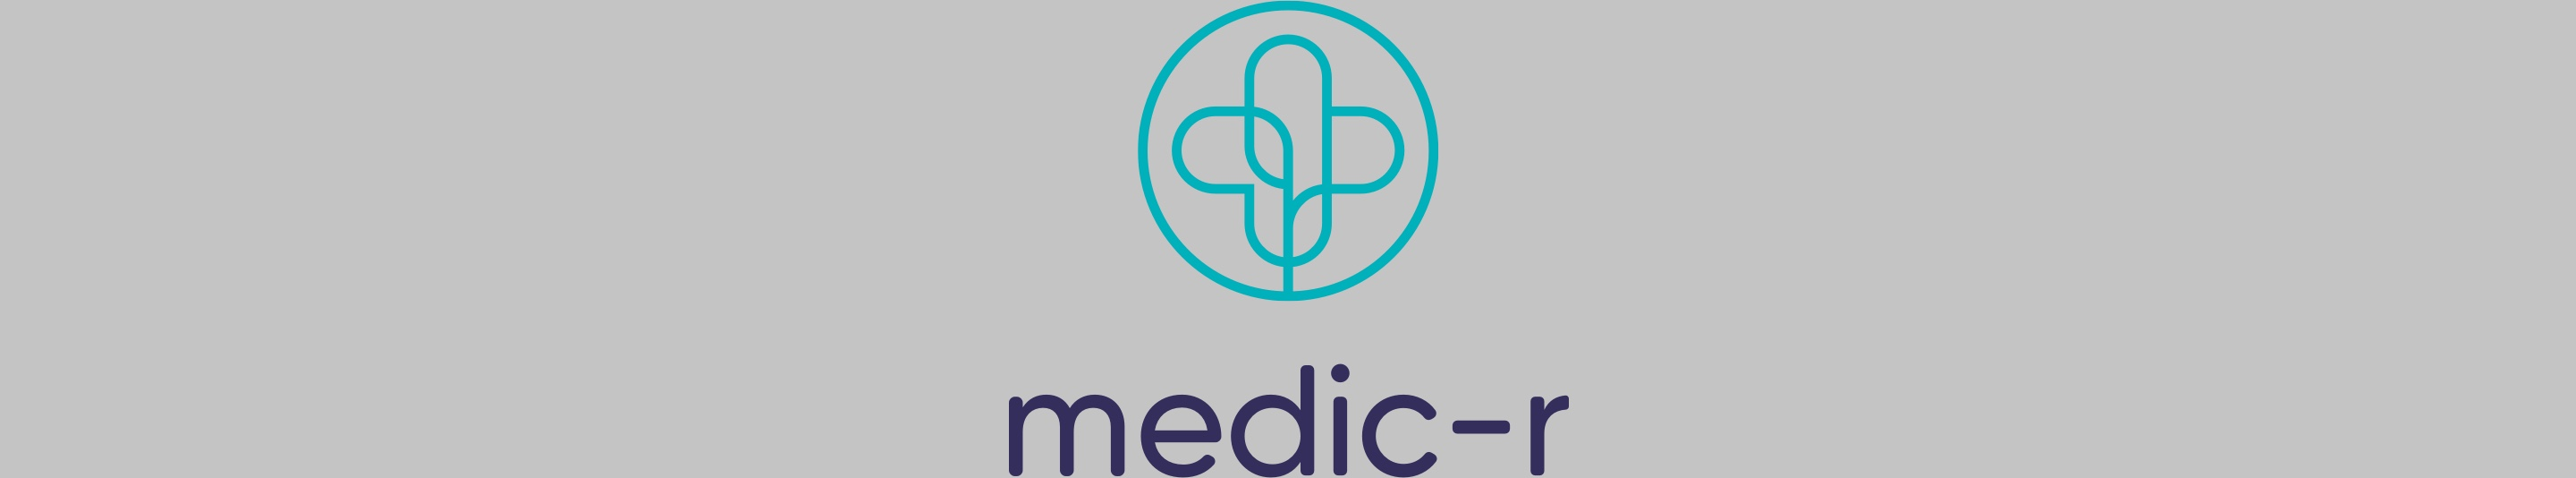 Logo design - medic-r by Uniforma